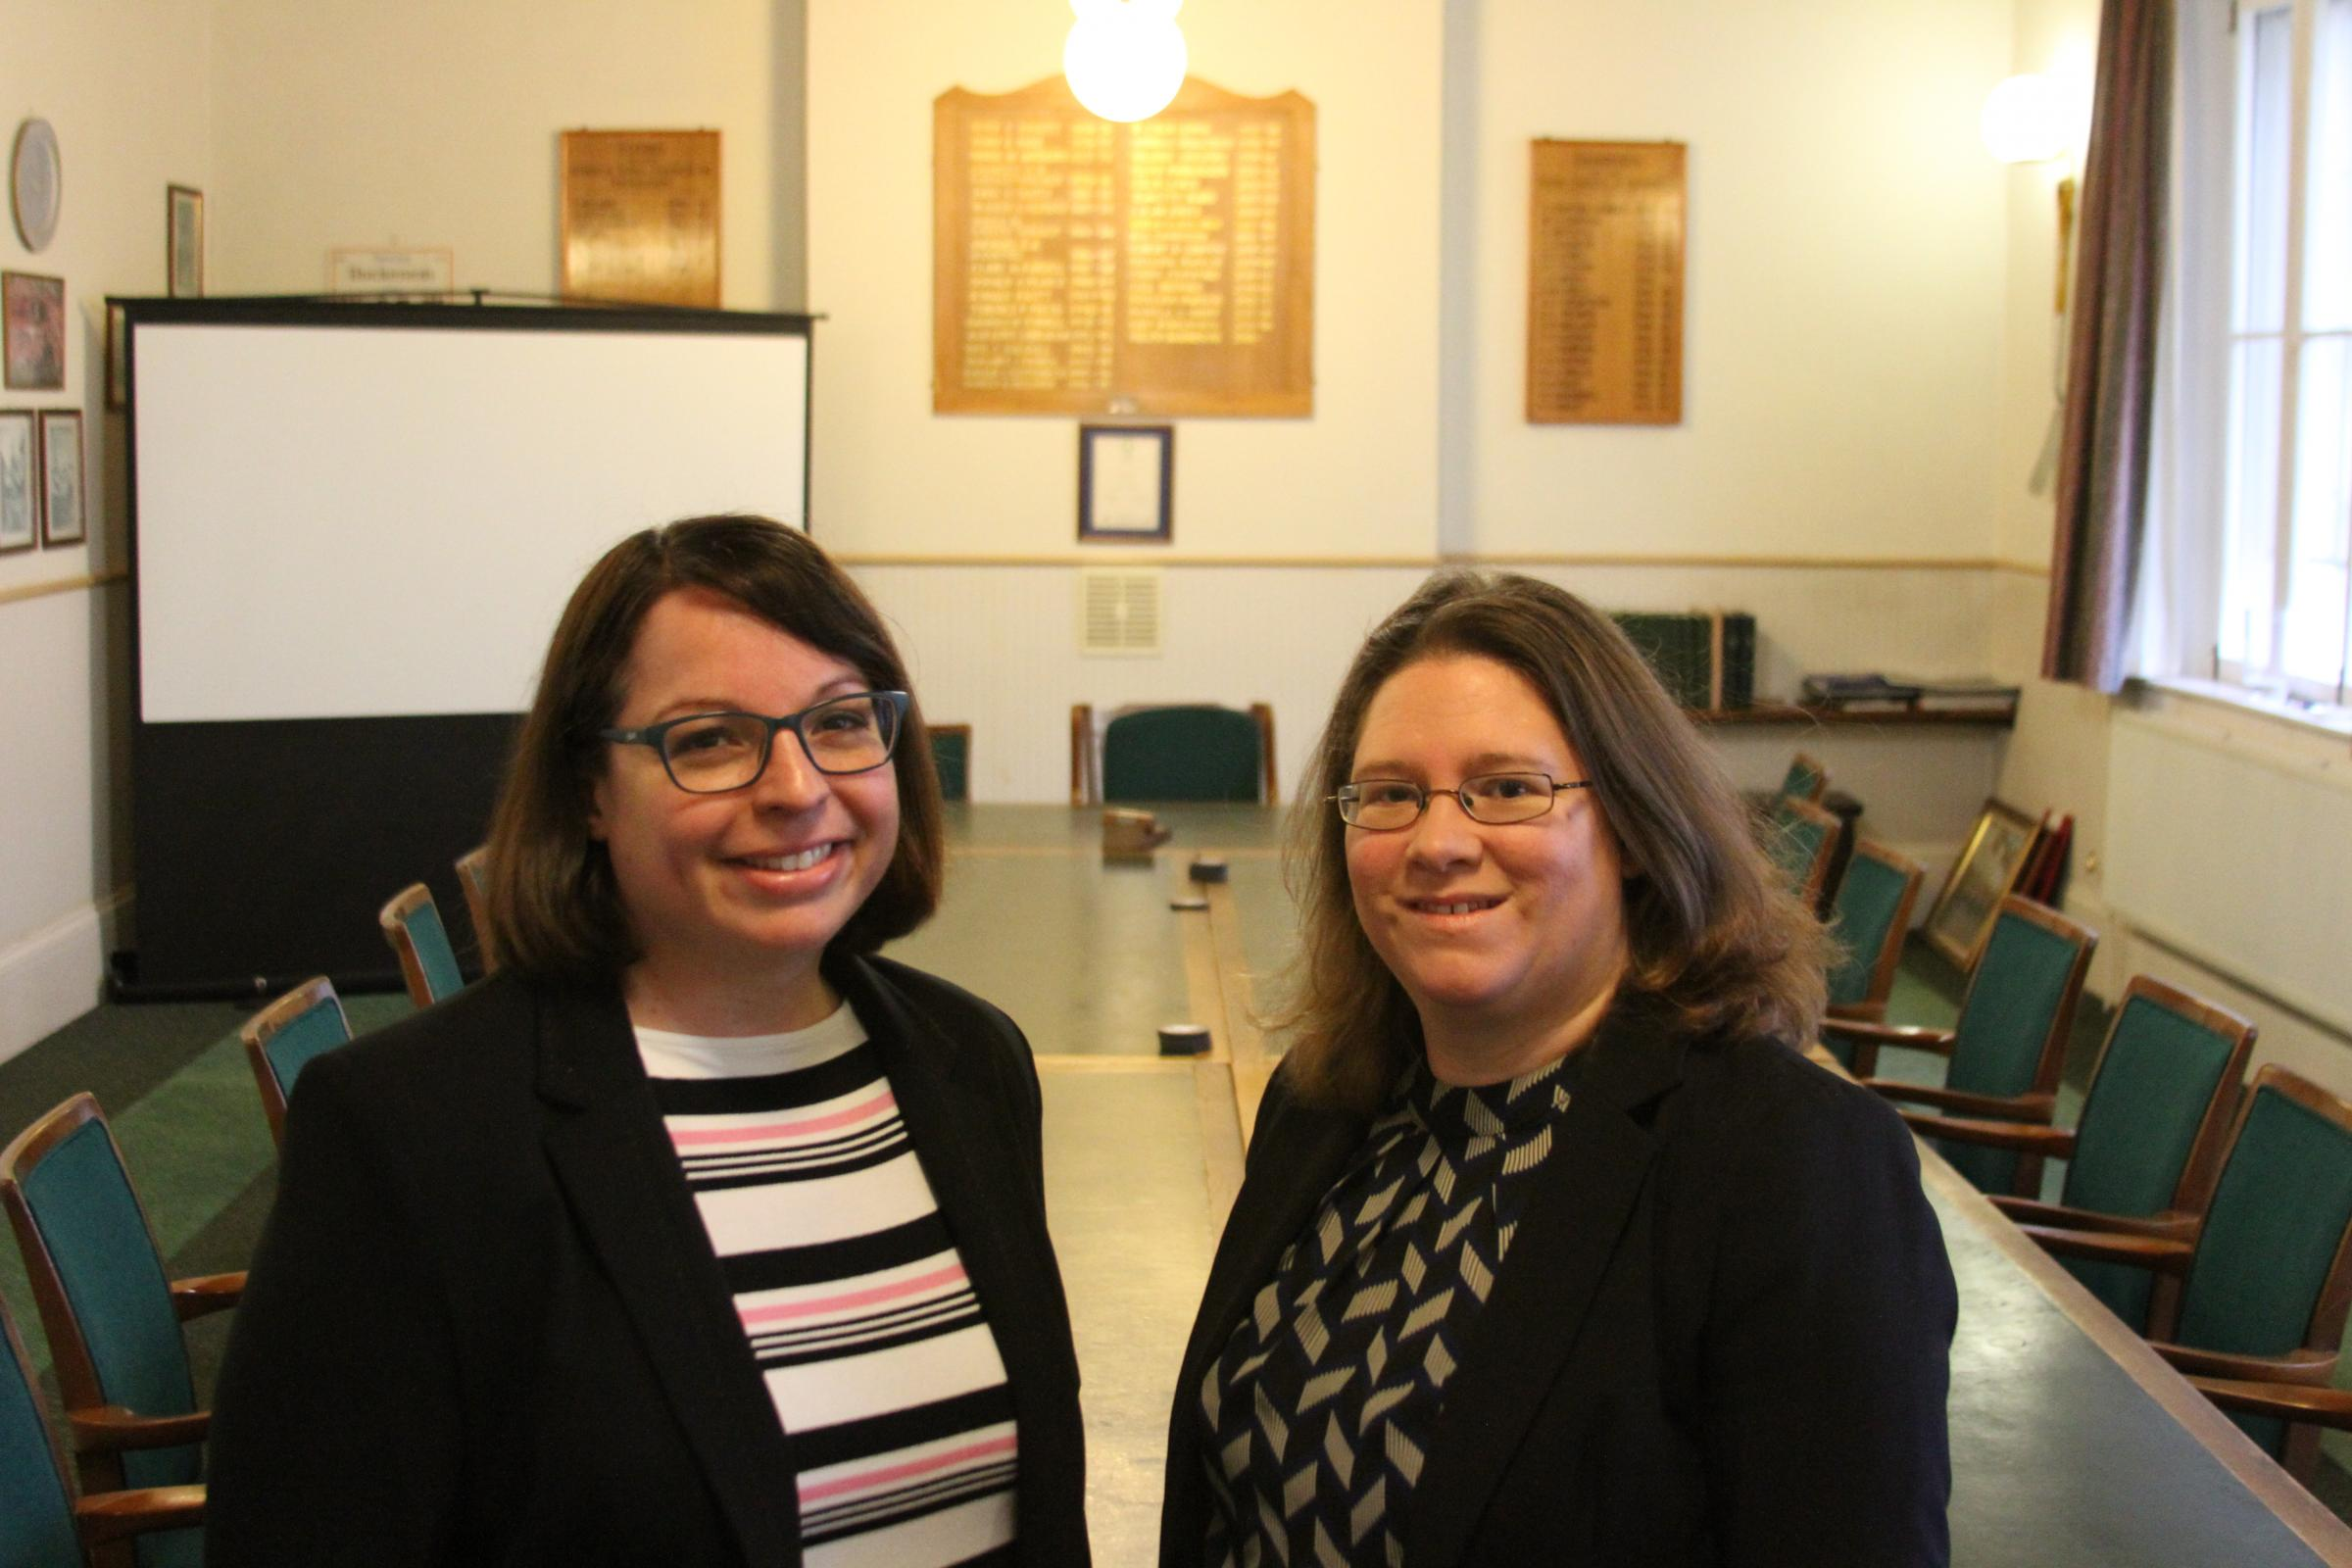 New clerk Louise Powell (left) in the Thornbury Town Council chambers with outgoing clerk Clare Nelmes